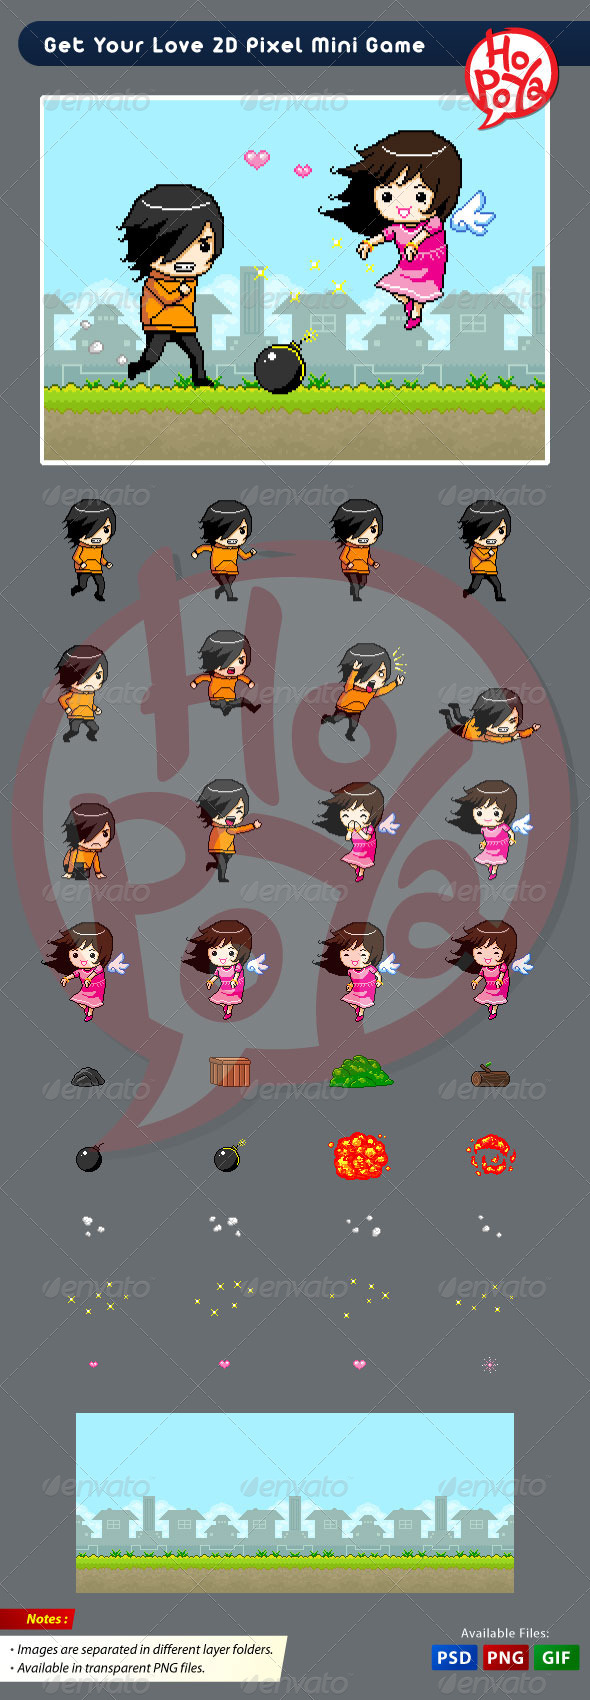 GraphicRiver Get Your Love 2D Pixel Mini Game 3456797